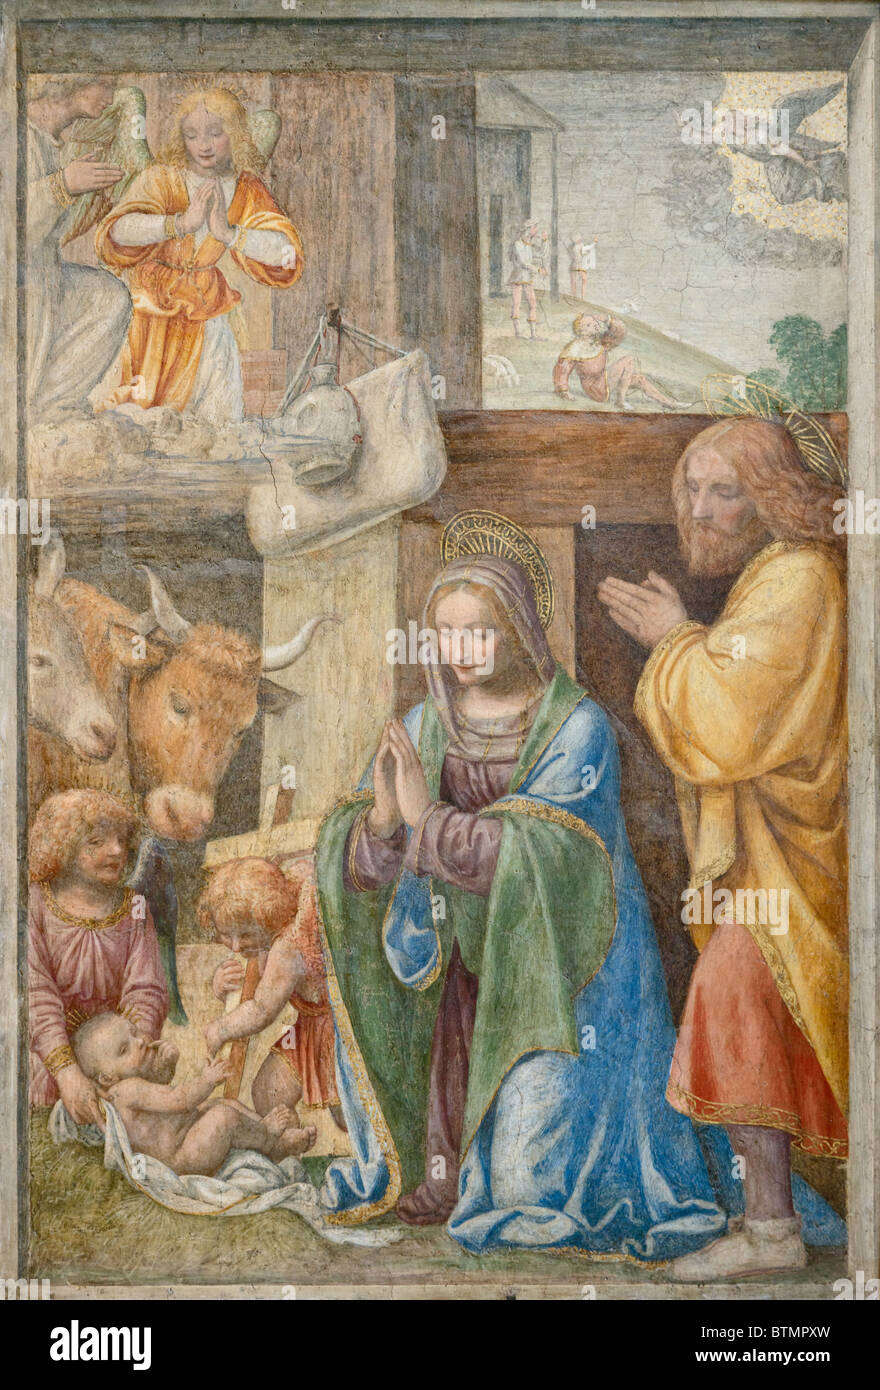 The Nativity and the Announcement to the Shepherds by Bernardino LUINI fresco painting Louvre Museum Paris - Stock Image